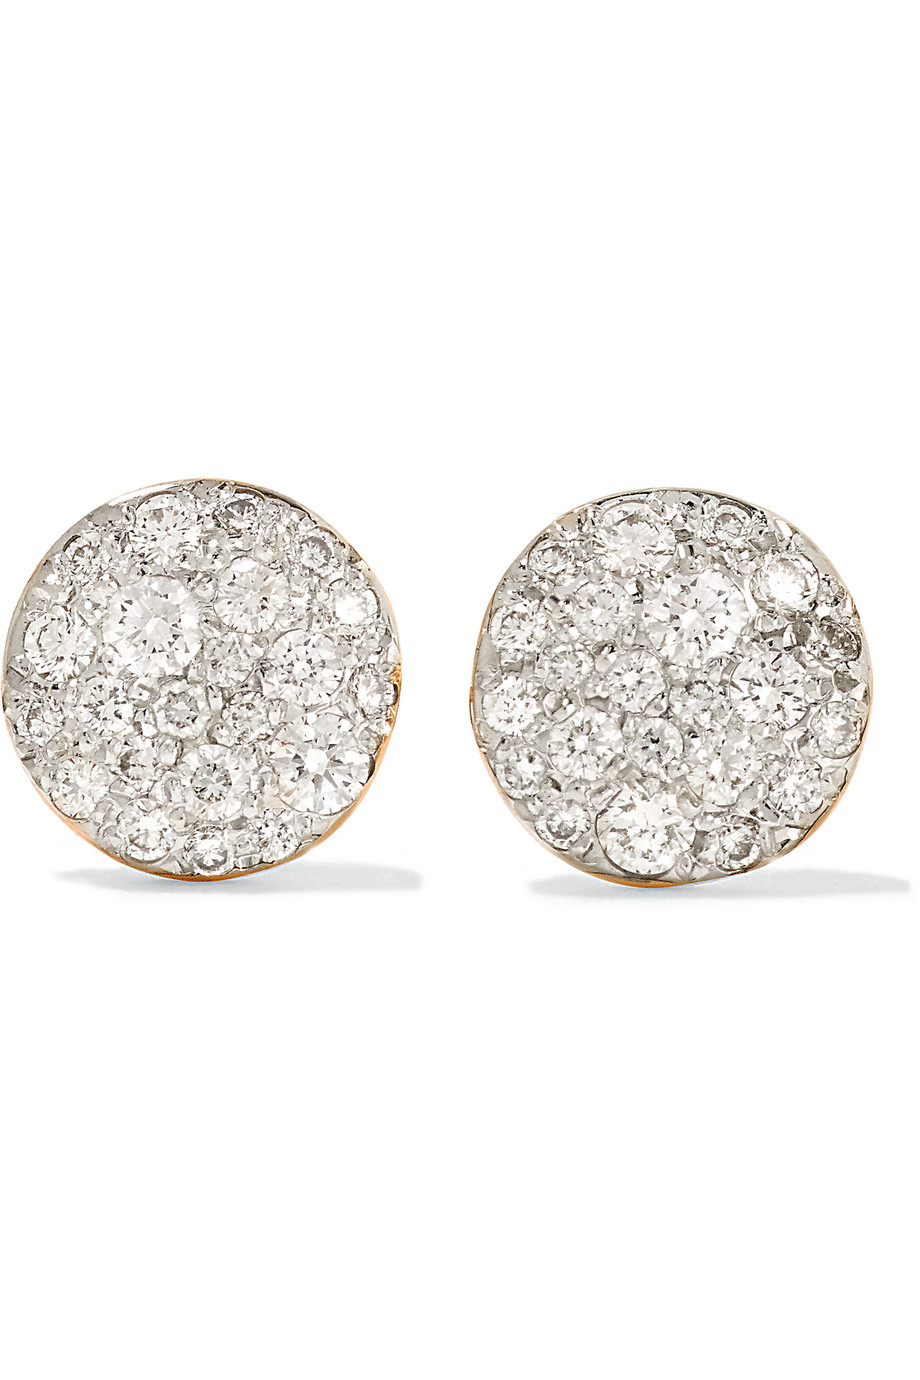 Sabbia 18-Karat Rose Gold Diamond Earrings, Rose Gold/Silver, Women's